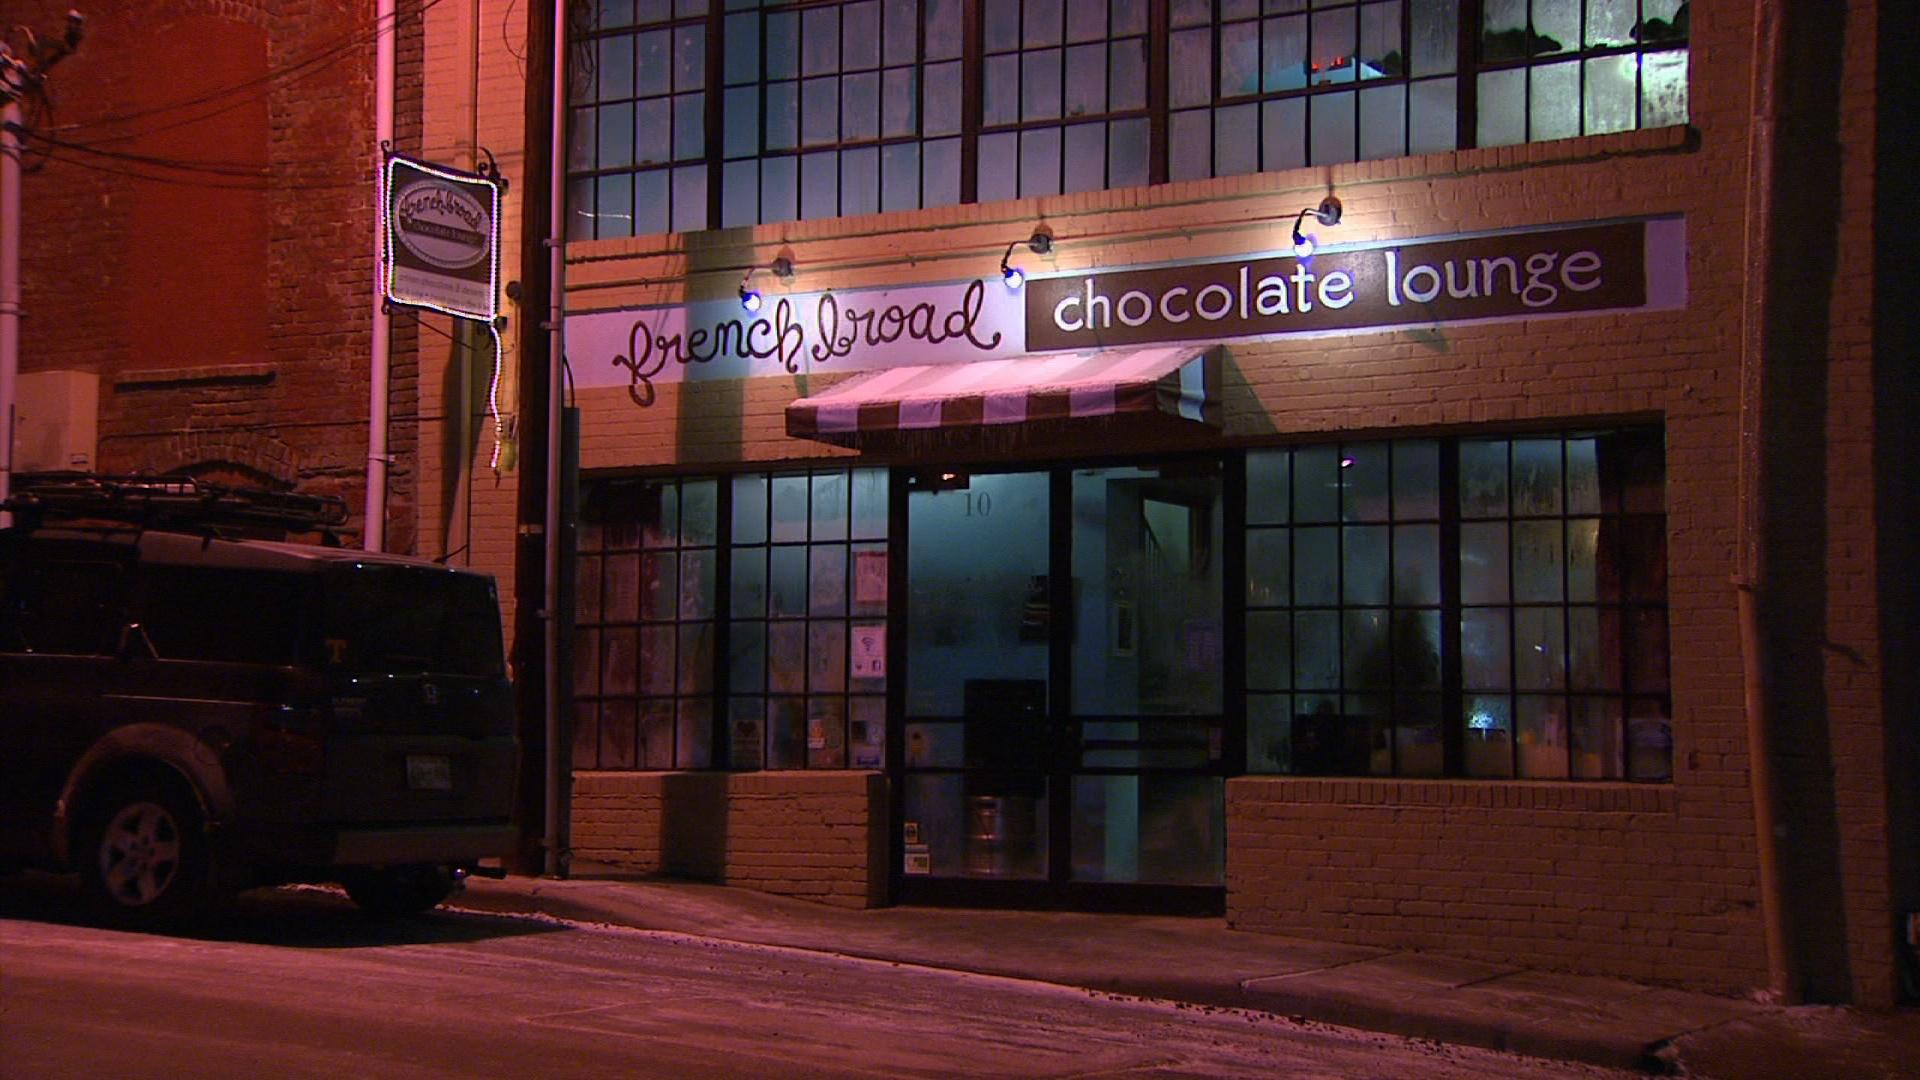 French Broad Chocolate Lounge image